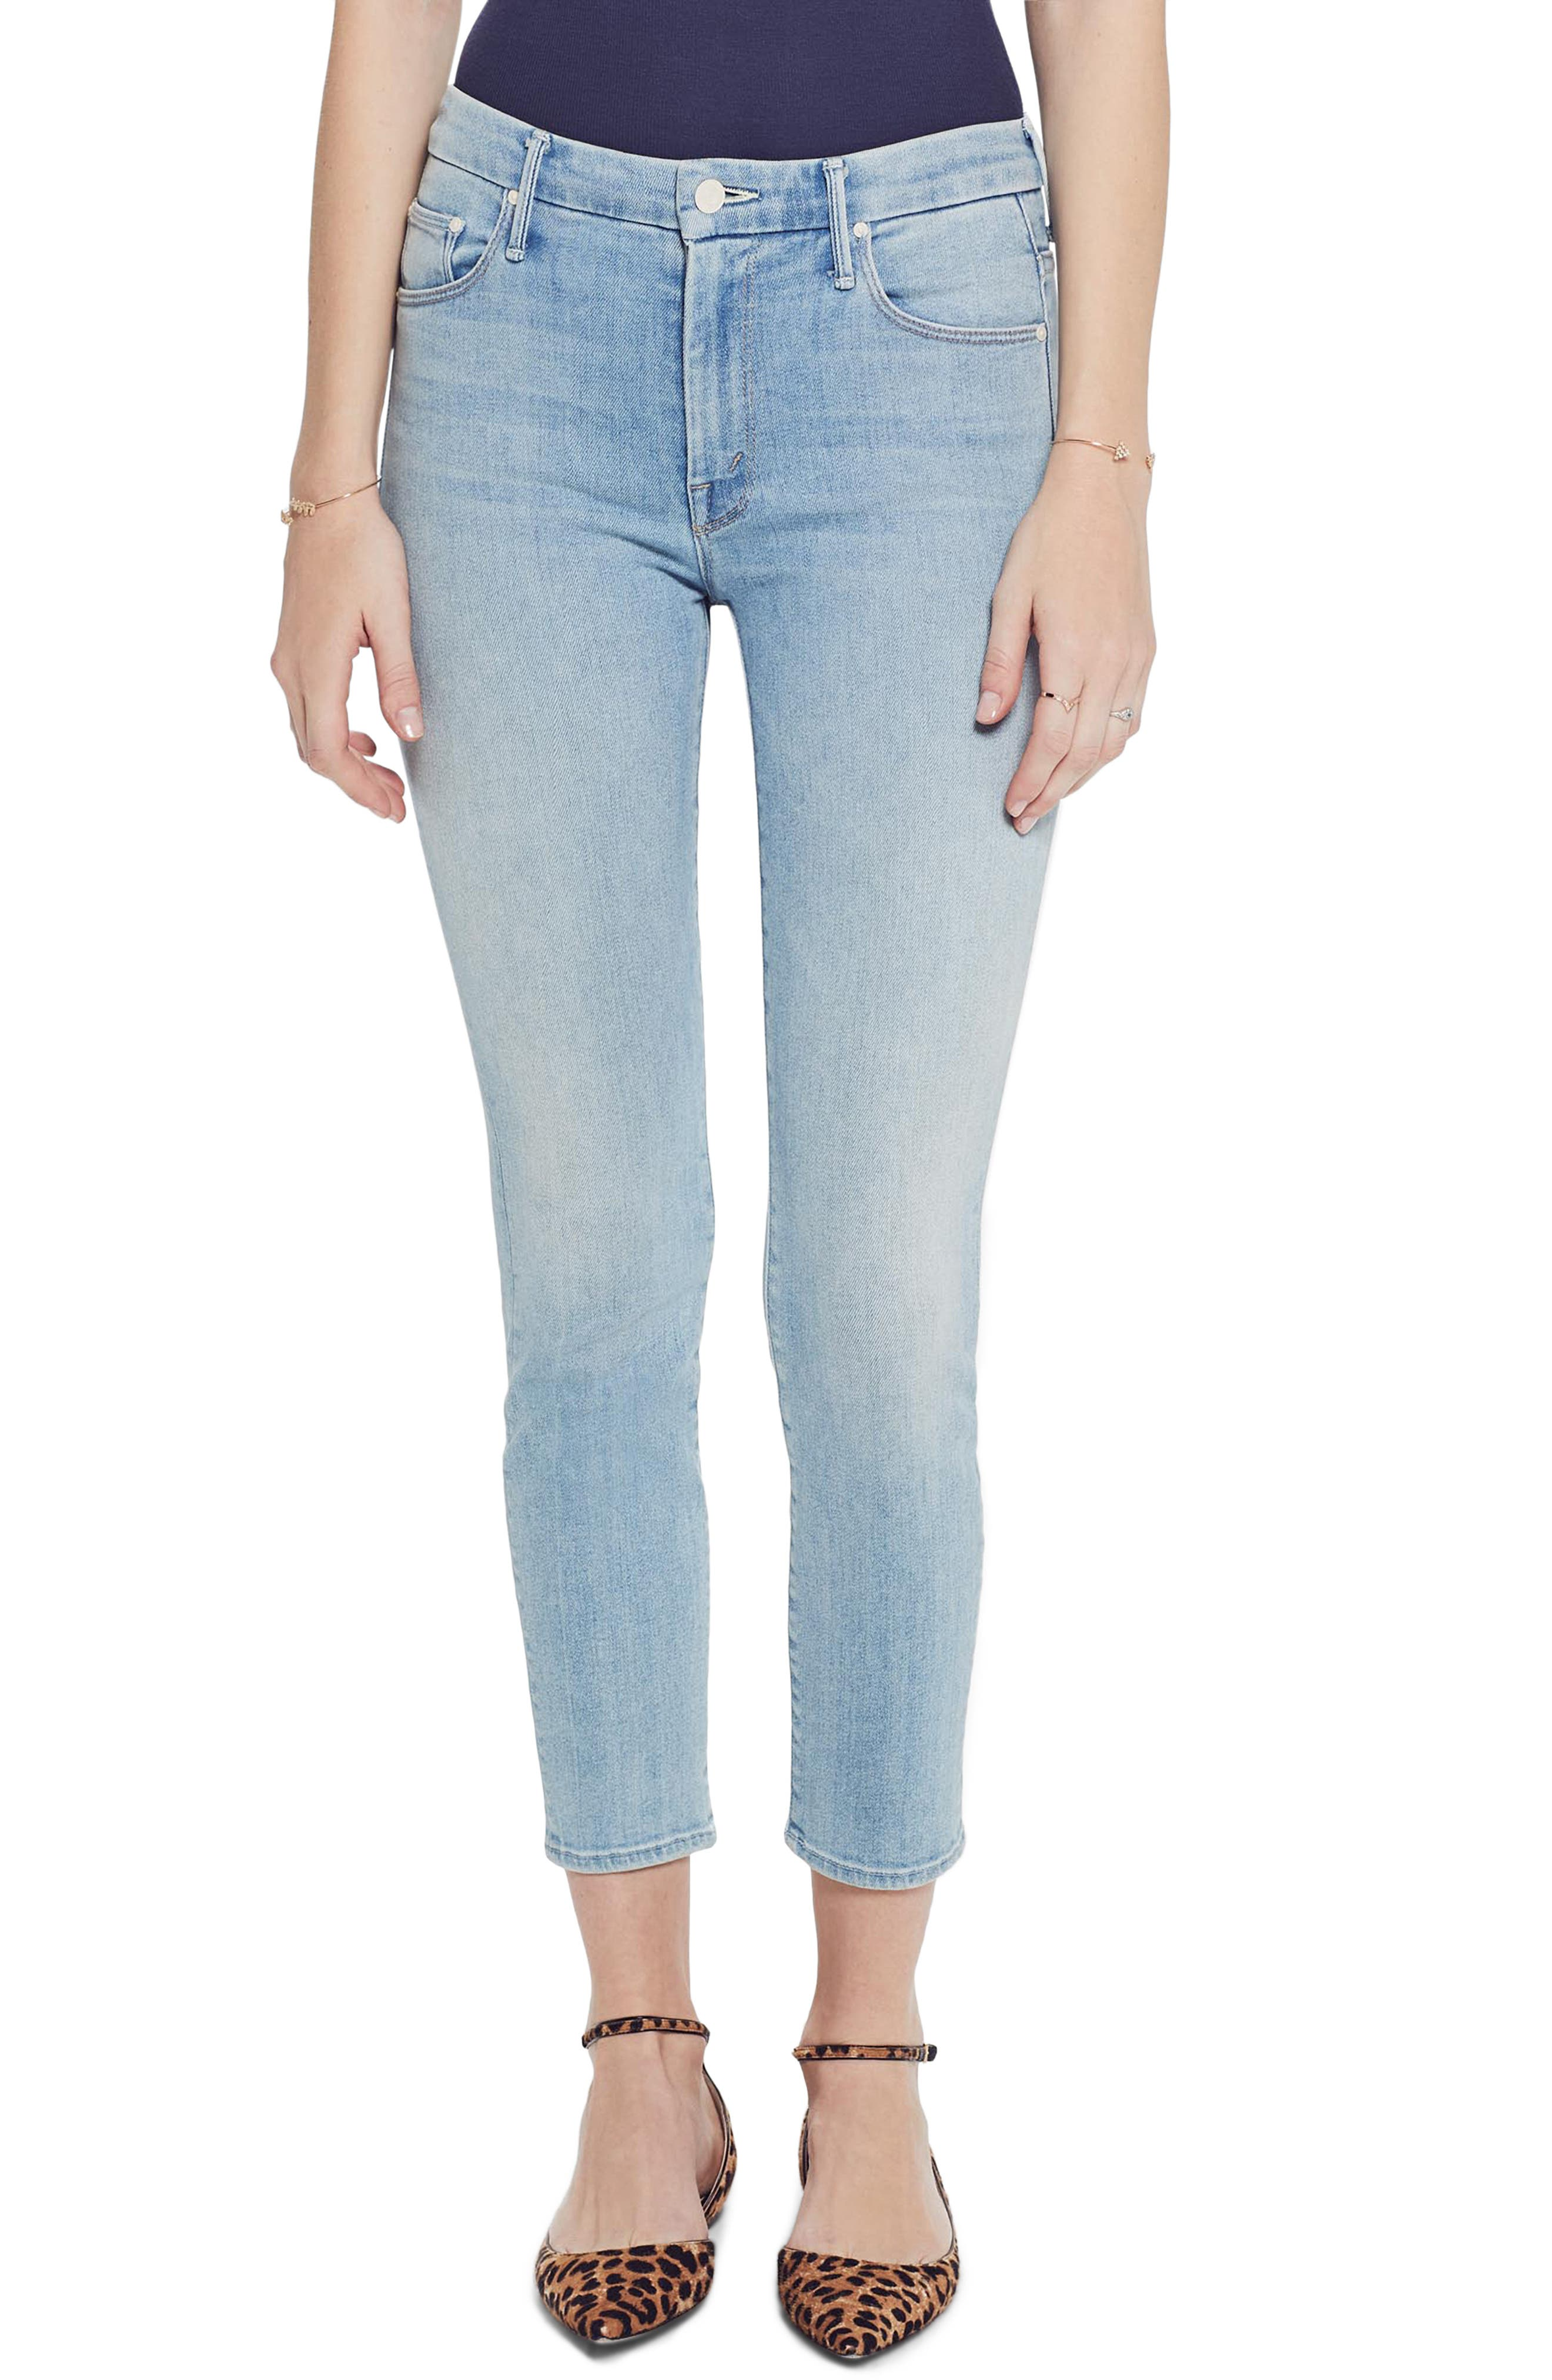 MOTHER, The Looker High Waist Crop Skinny Jeans, Main thumbnail 1, color, SWIMMING POOL SUNDAY